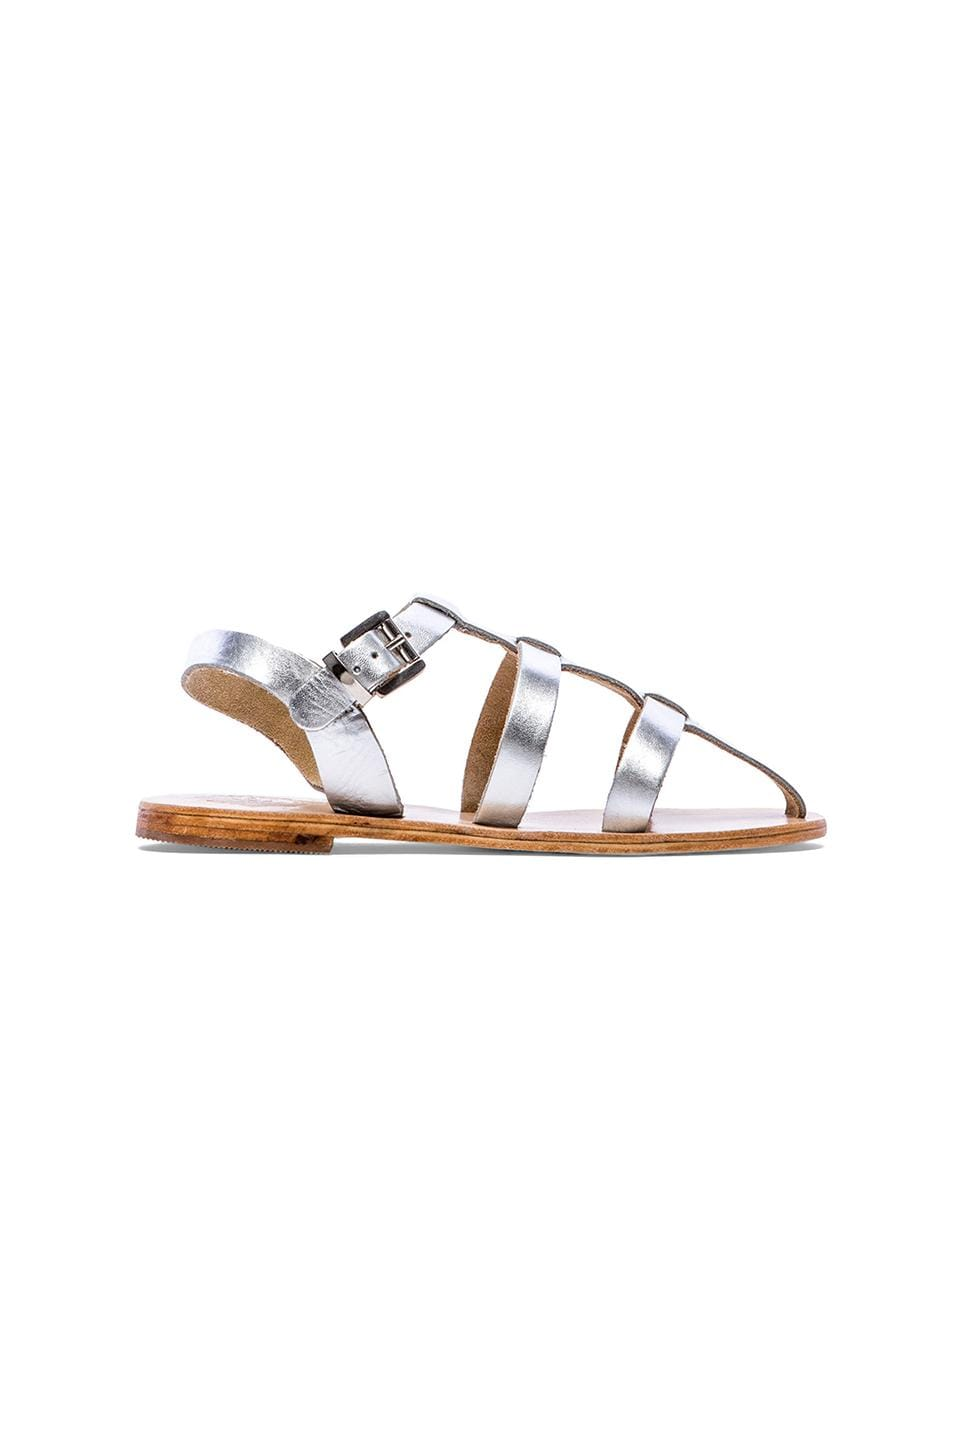 Sol Sana Art Sandal in Metallic Silver